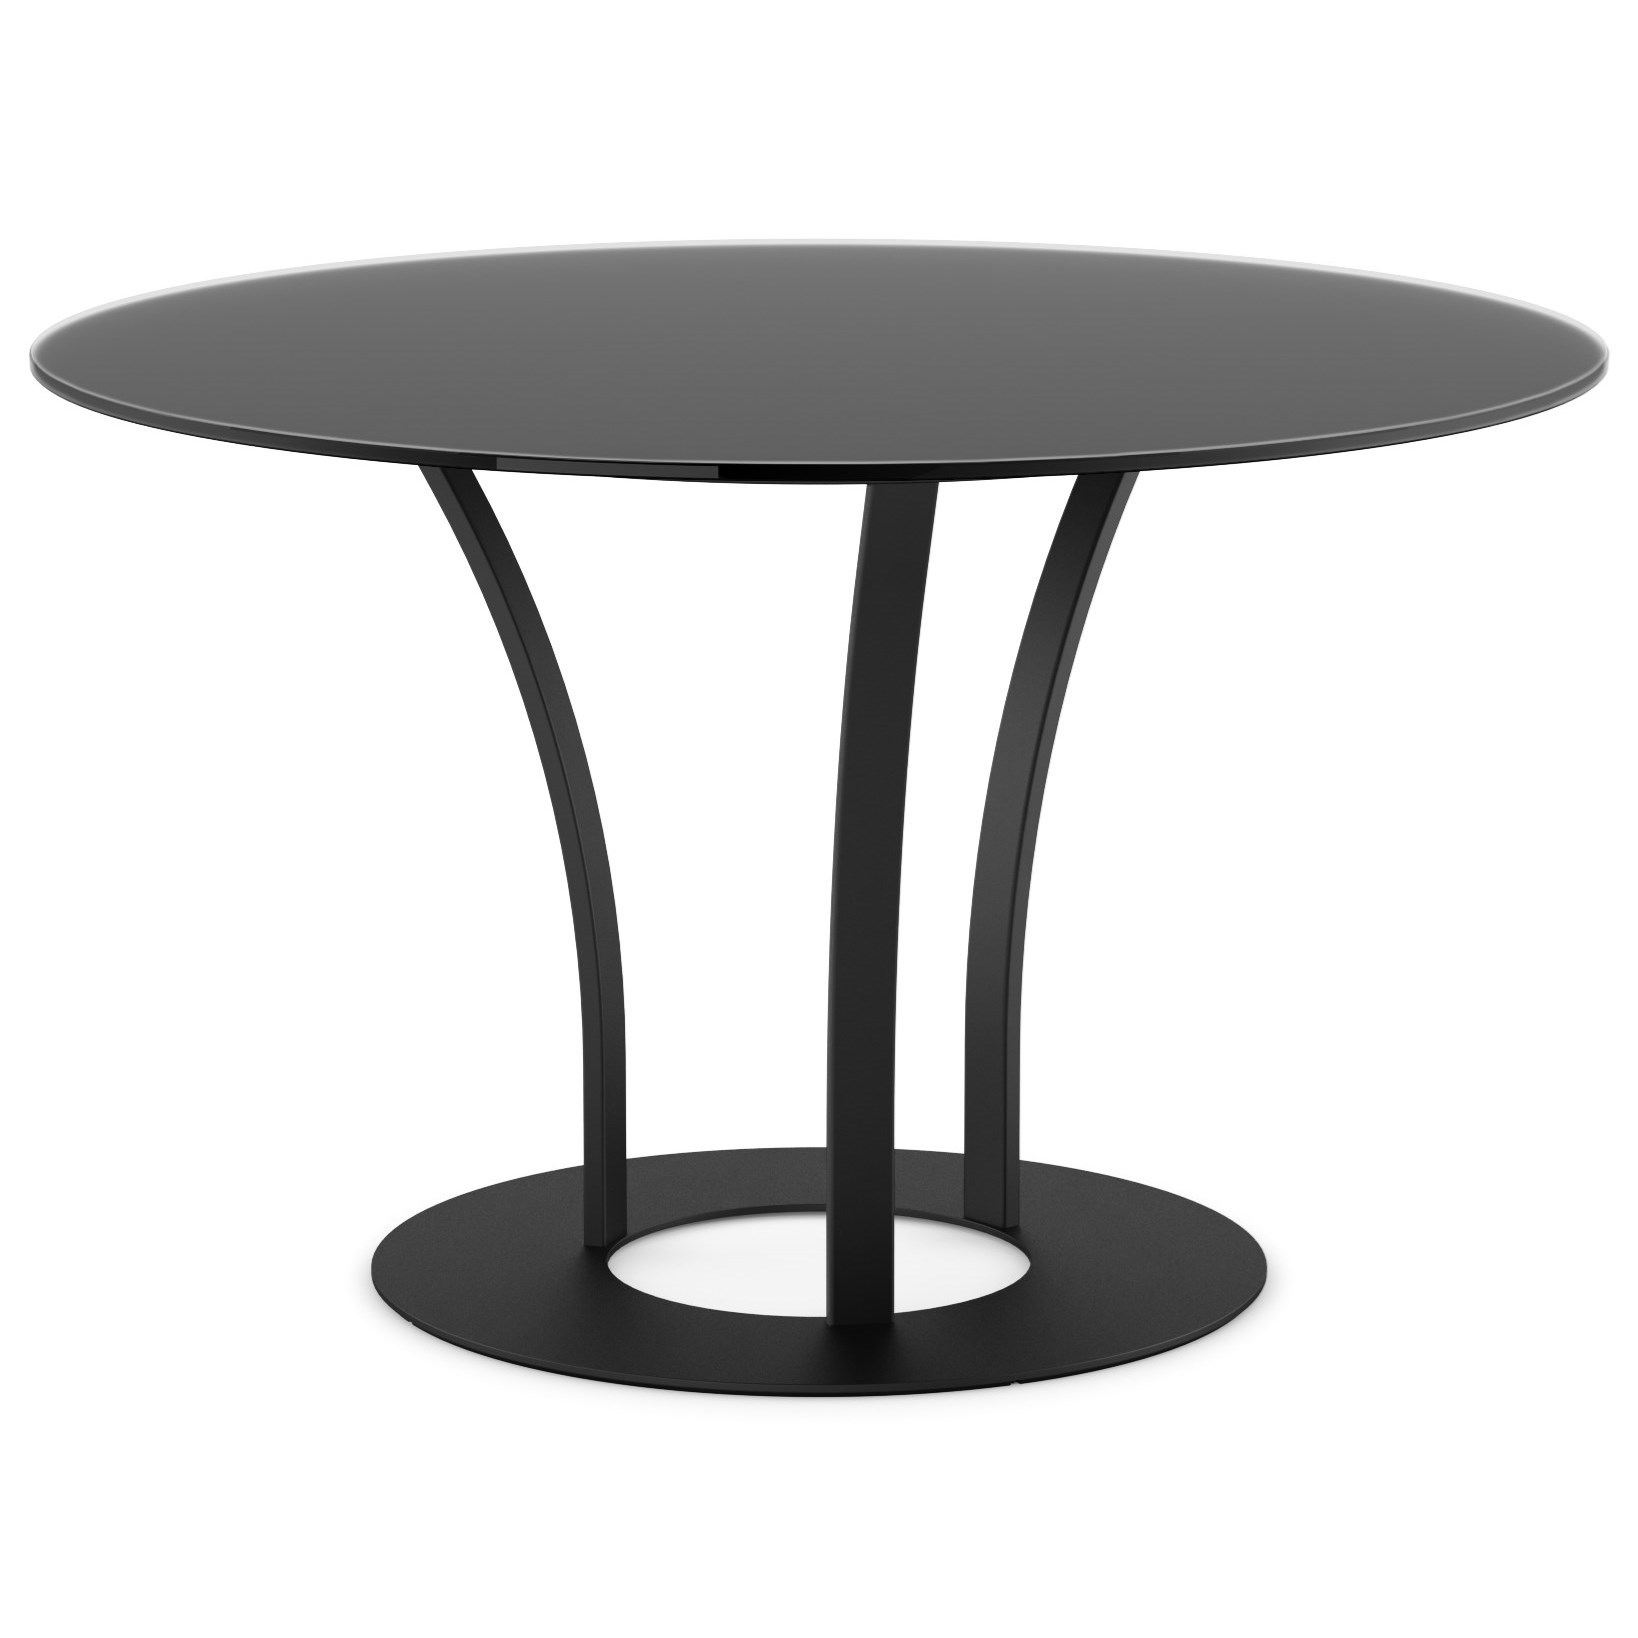 Urban Dalia XL Table by Amisco at Rooms and Rest